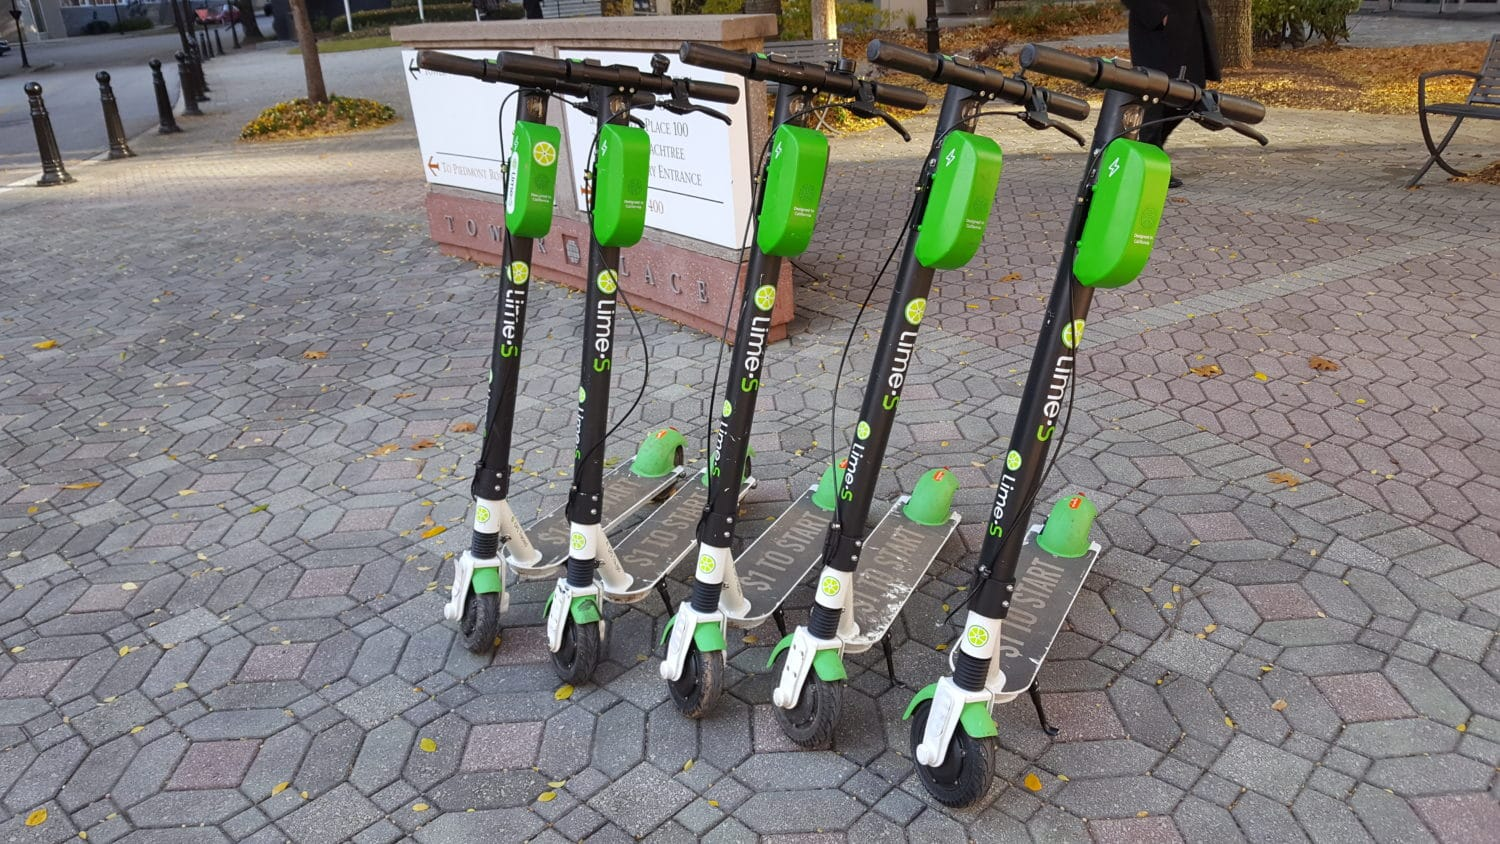 Lime scooter company warns of brake issue